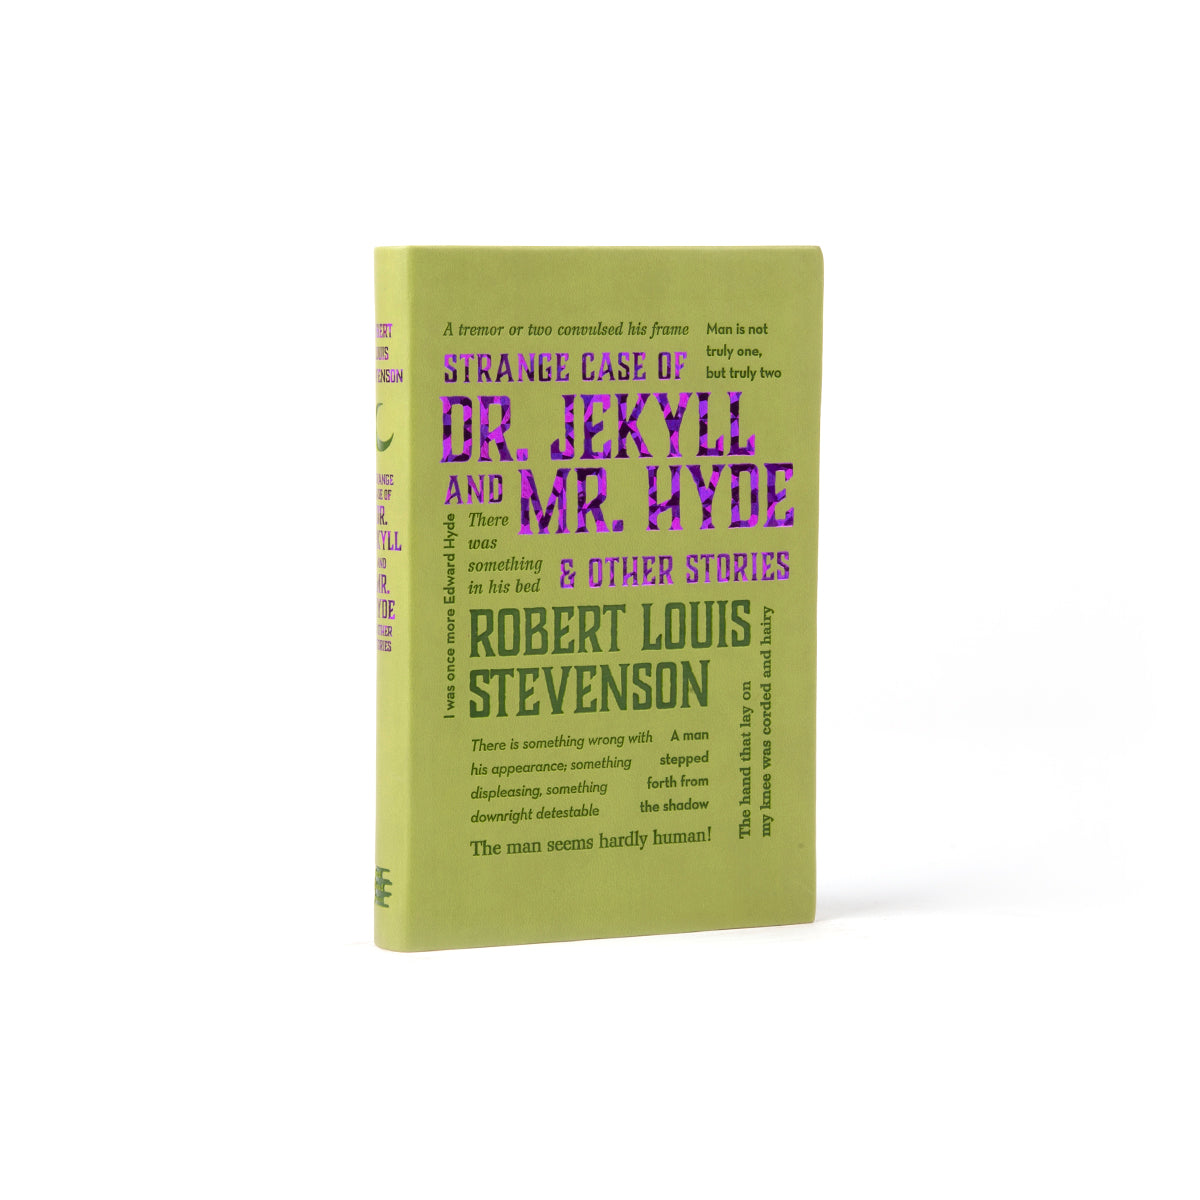 Strange Case of Dr. Jekyll and Mr. Hyde by Robert Louis Stevenson